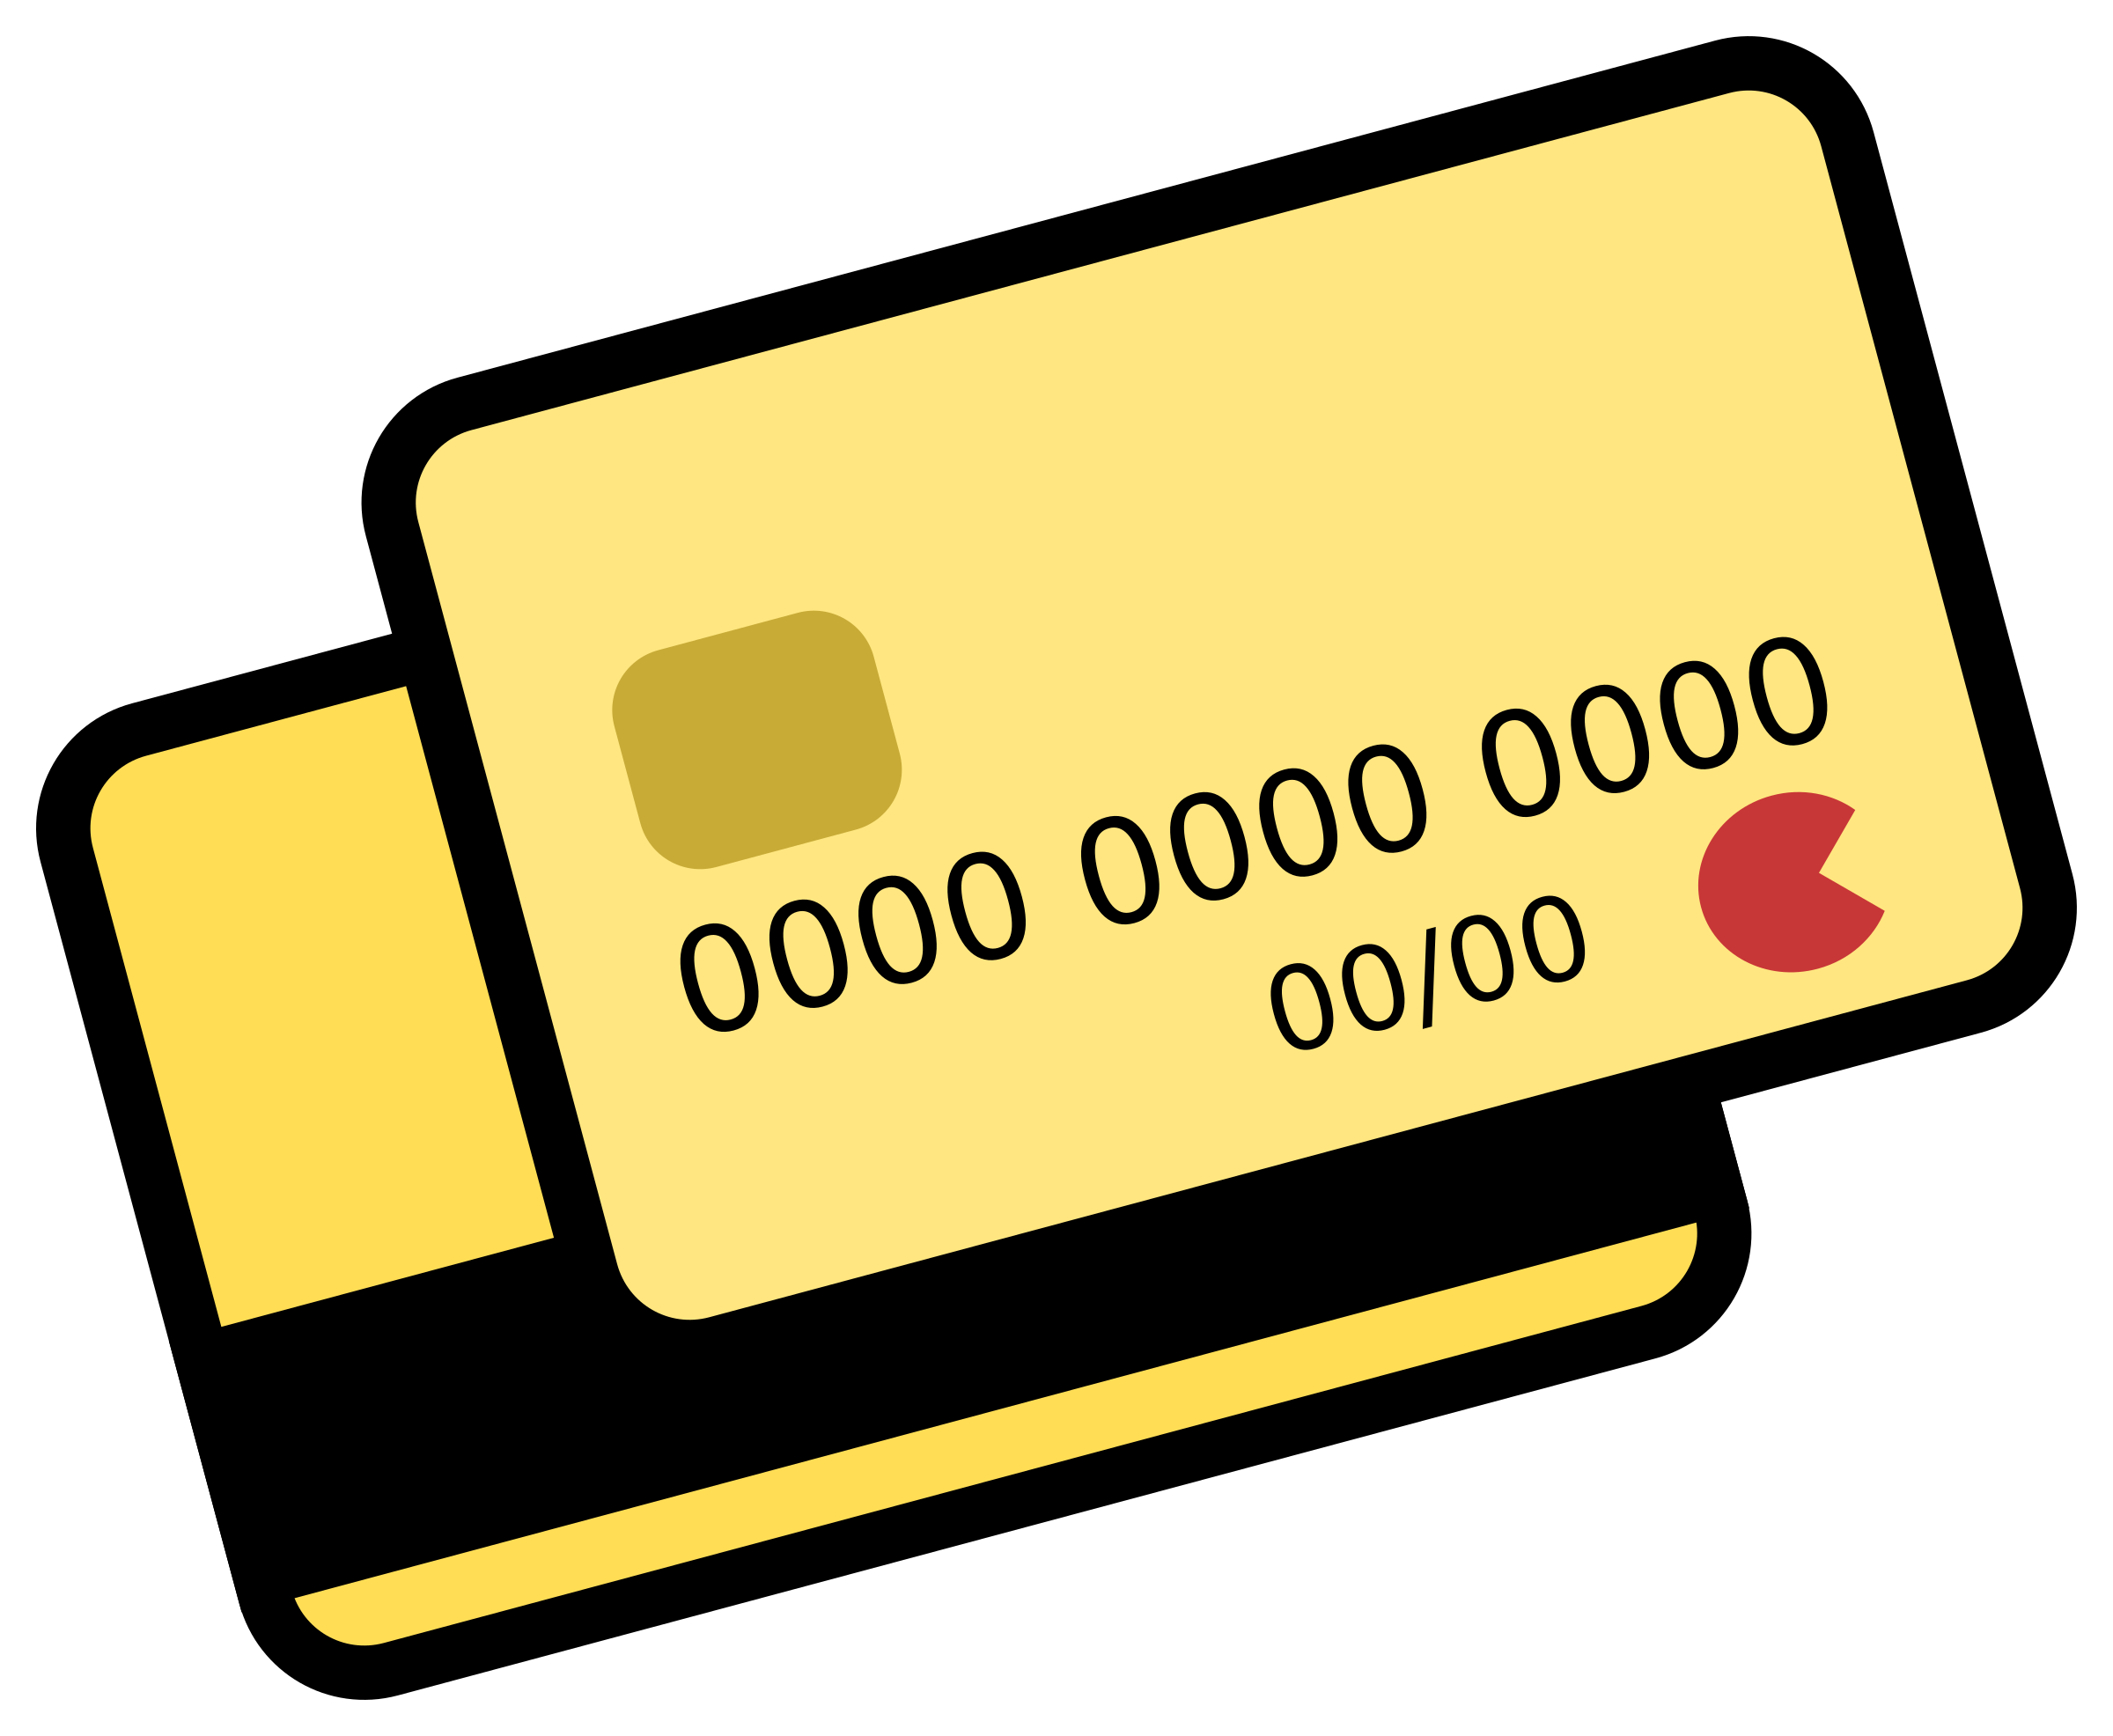 Credit Card Vector Graphics image.